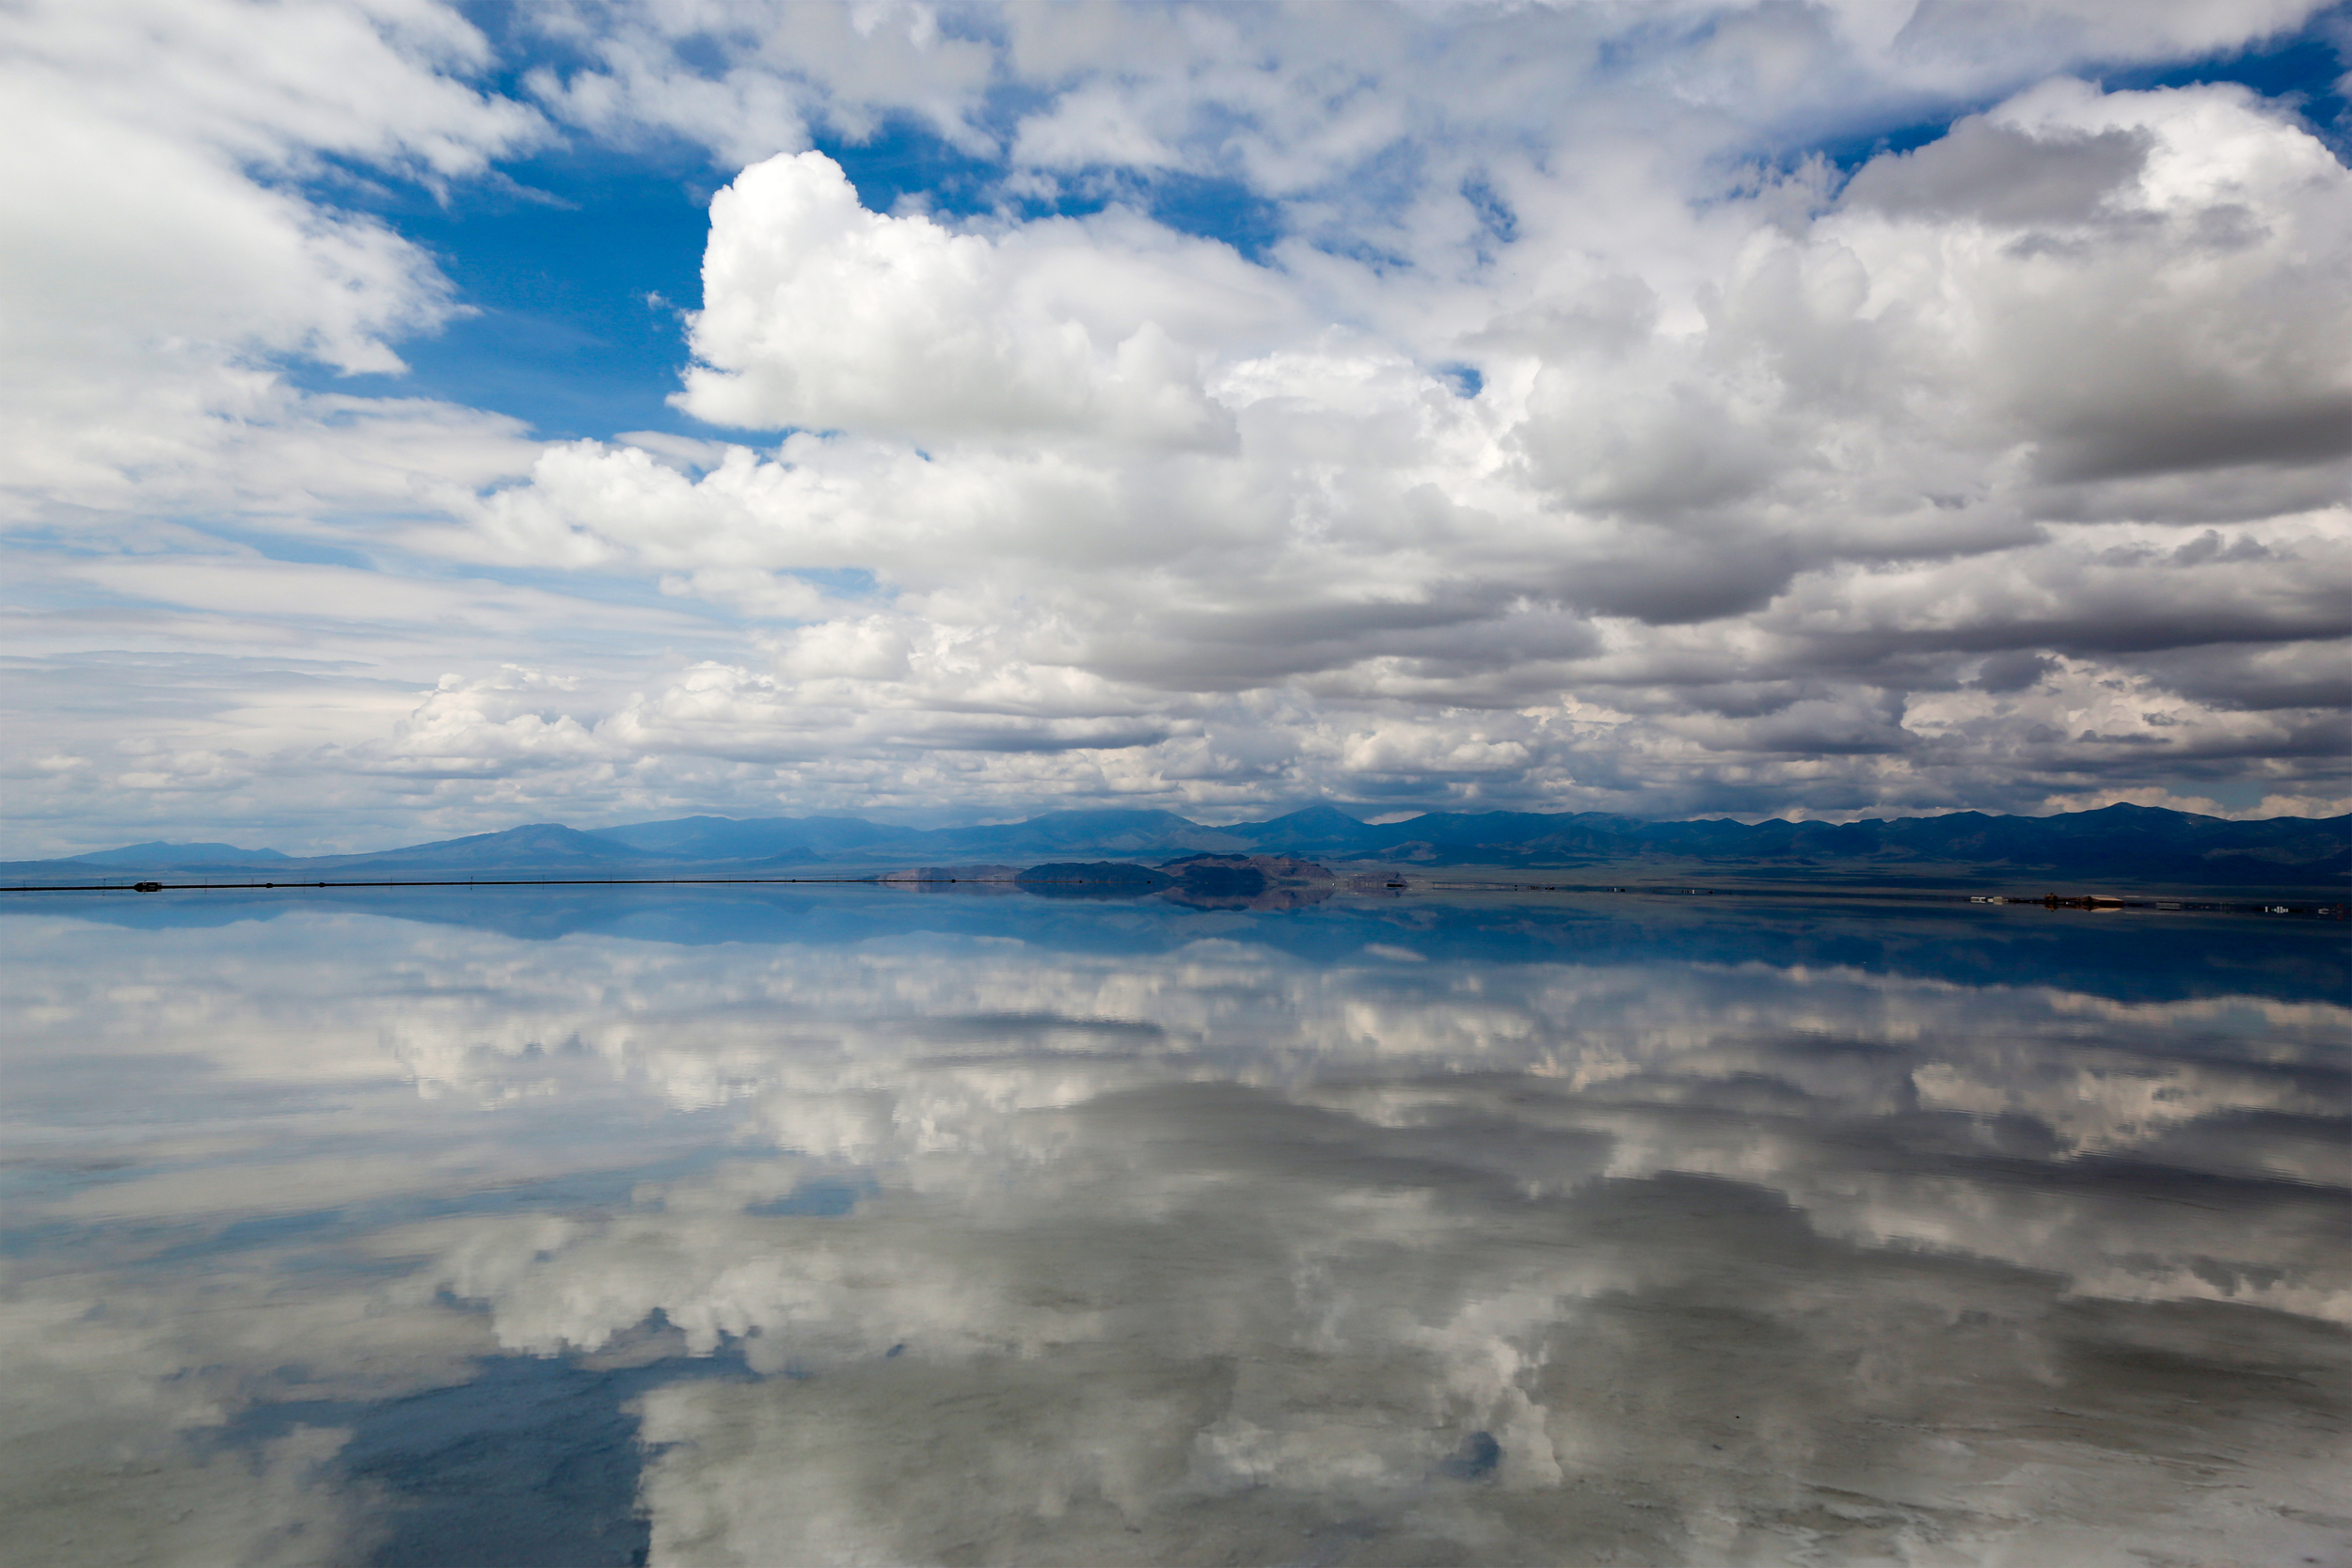 It is often hard to tell where the land ends and the horizon begins in the remote Bonneville Salt Flats,